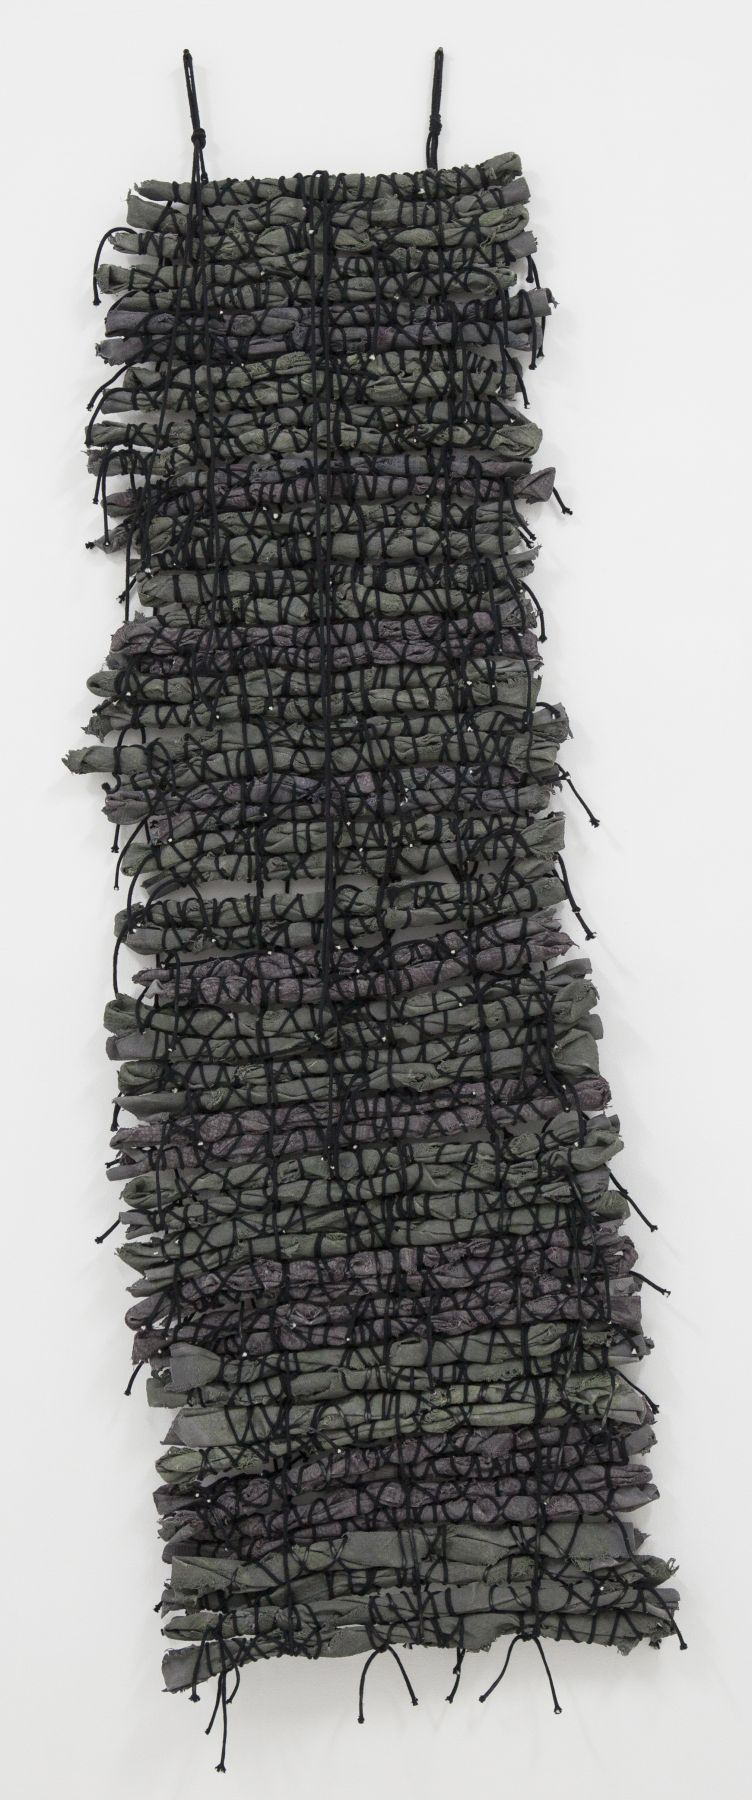 Hassan Sharif, Rug No. 10, 2015